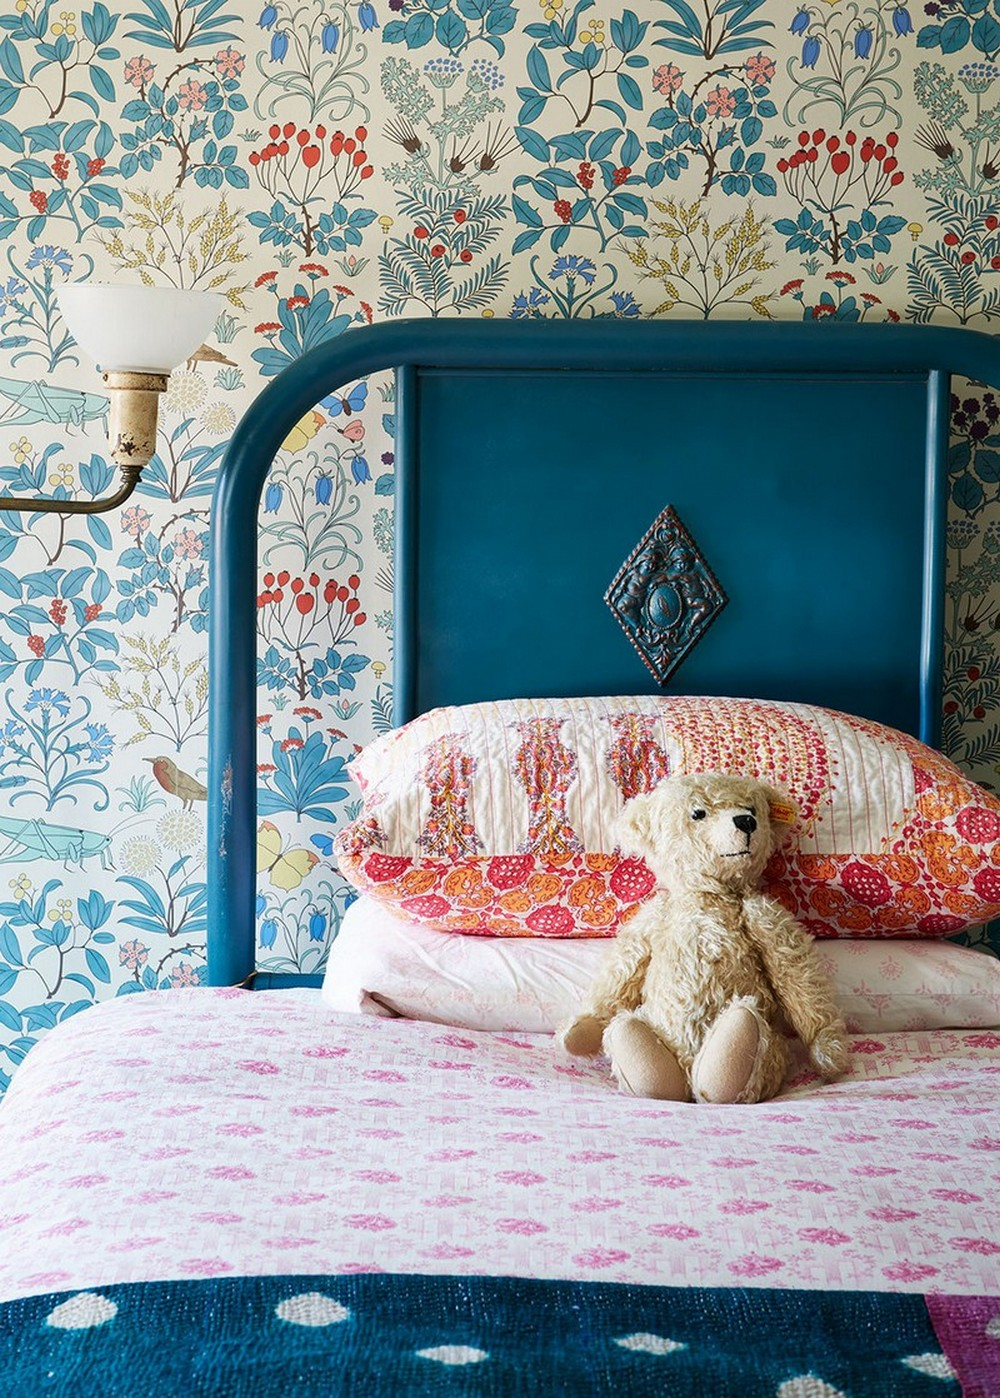 CovetED Shows The 2019 Trends For Spring Inspired Kid's Bedroom Decor Kid's Bedroom Decor CovetED Shows The 2019 Trends For Spring Inspired Kid's Bedroom Decor CovetED Shows The 2019 Trends For Spring Inspired Kids Bedroom Decor 4